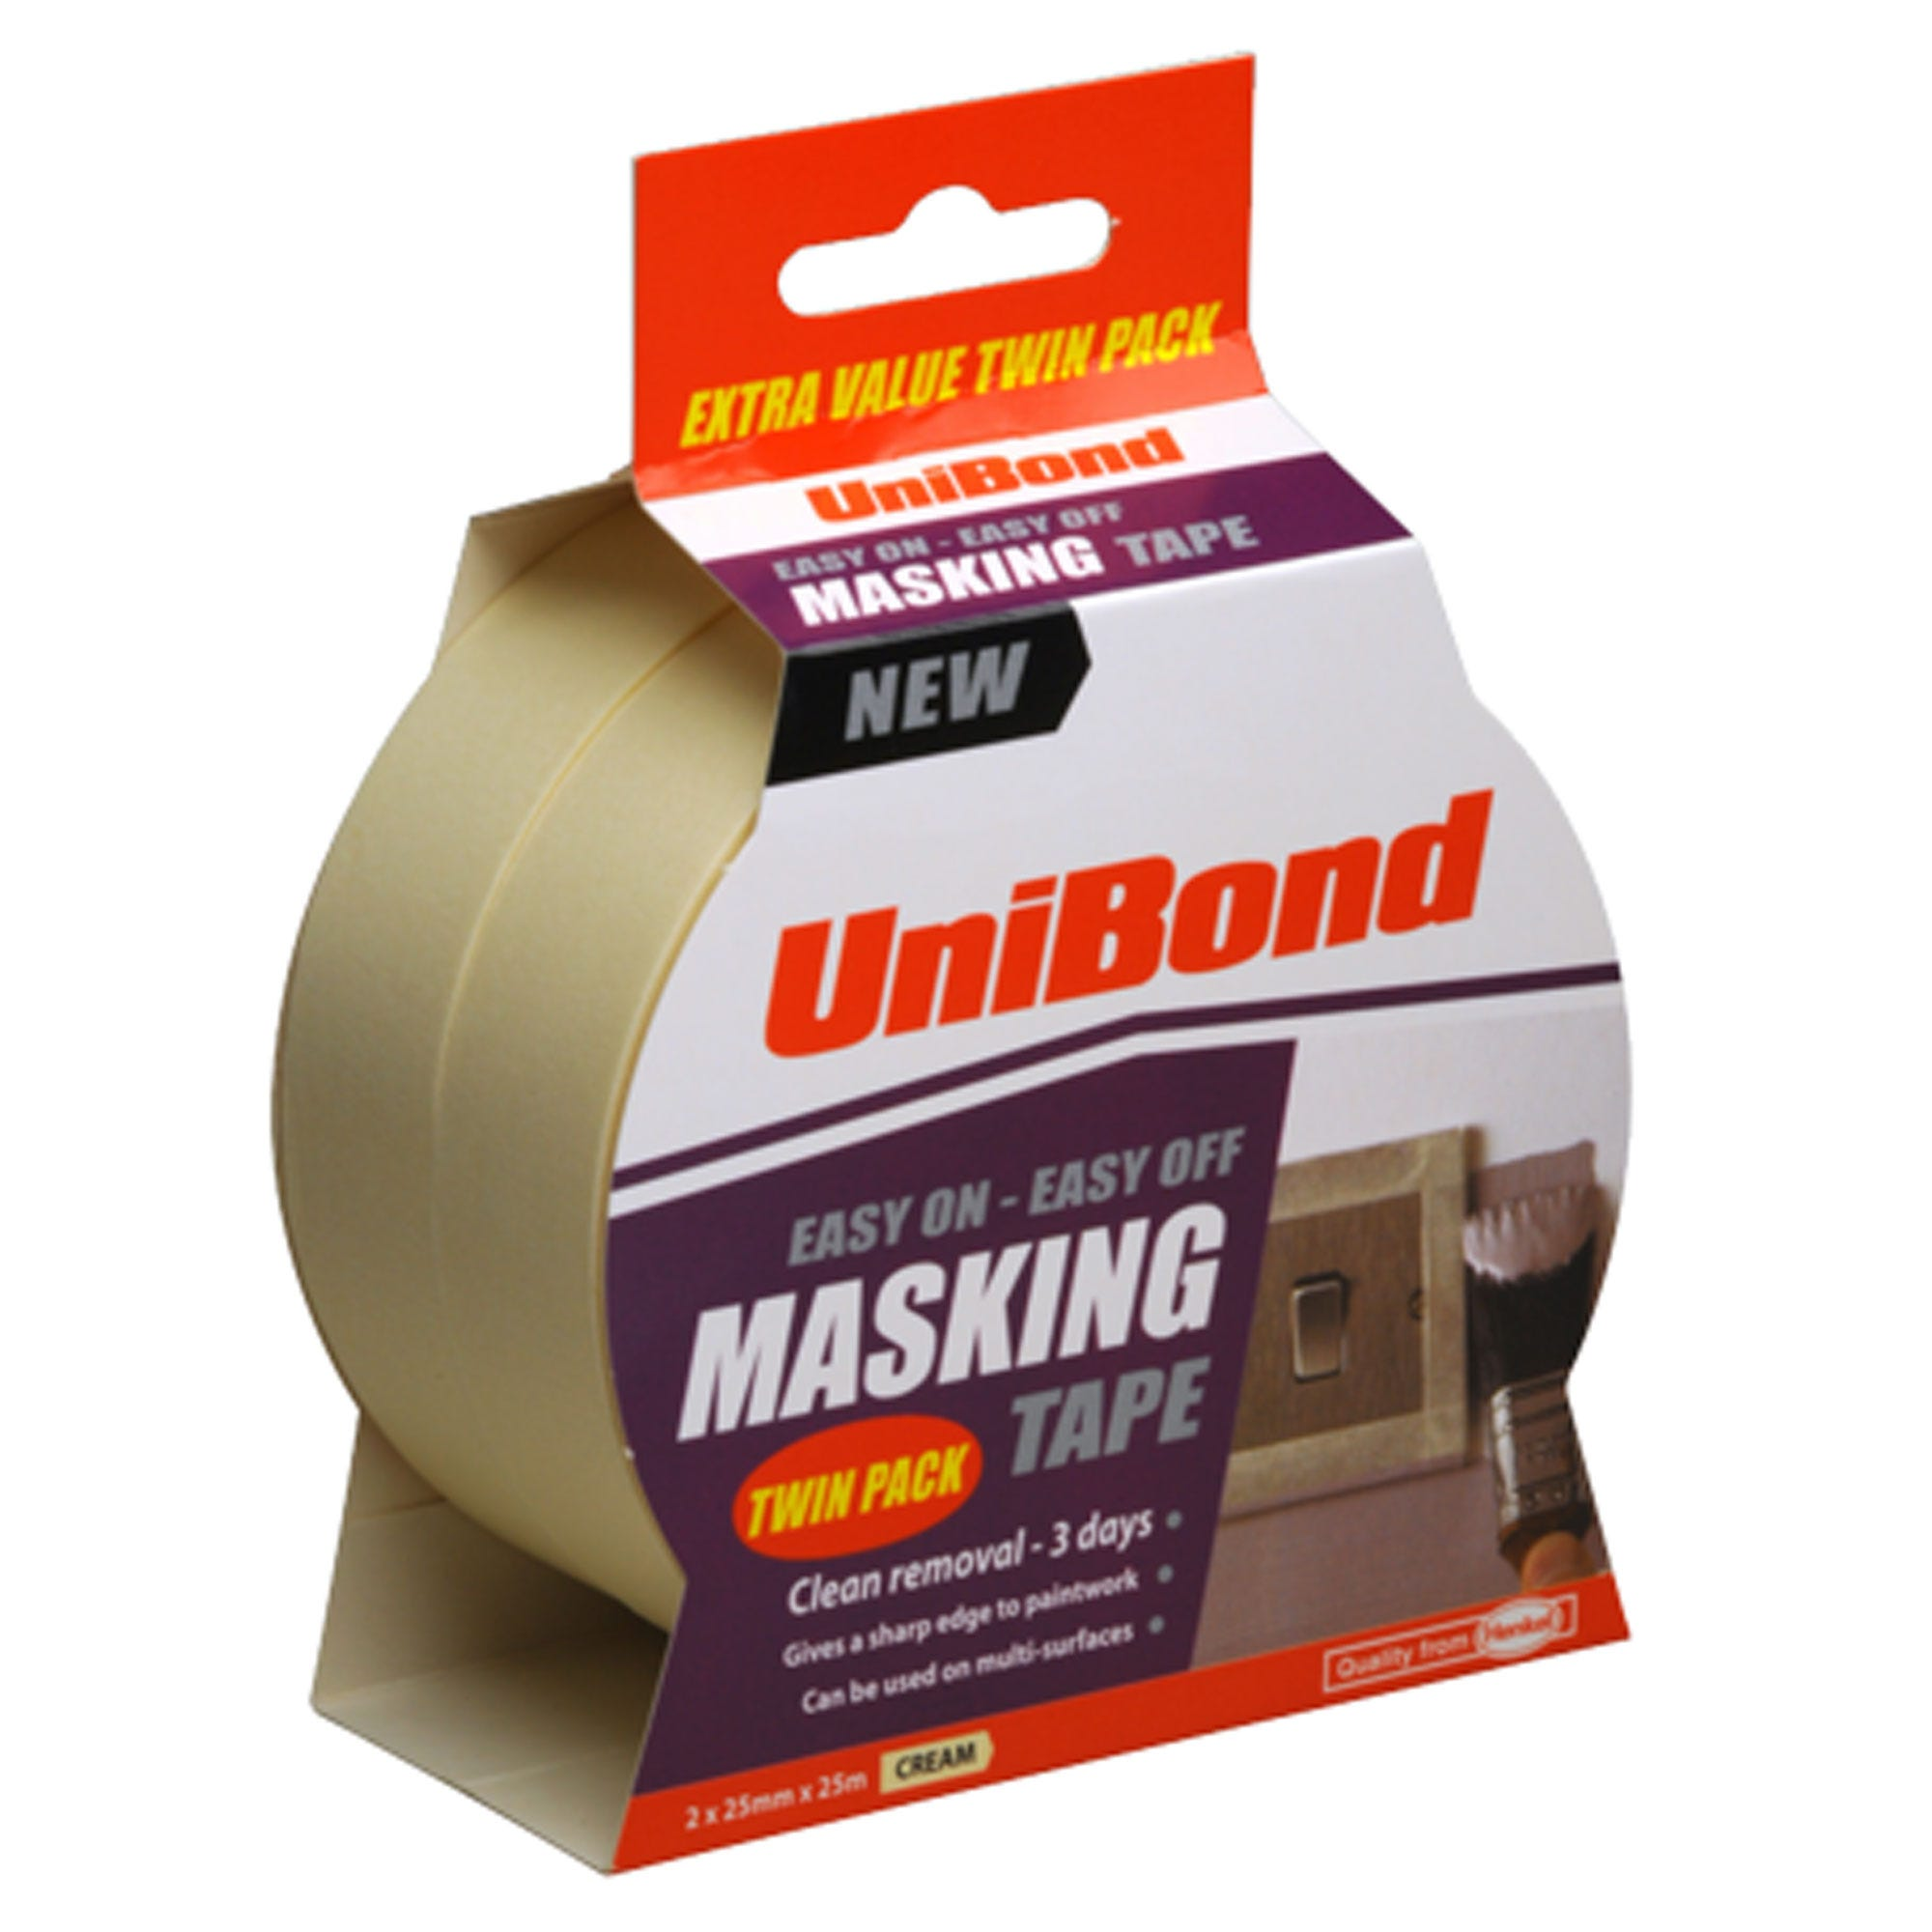 Unibond Easy On - Easy Off Masking Tape 25mm X 25m Twin Pack